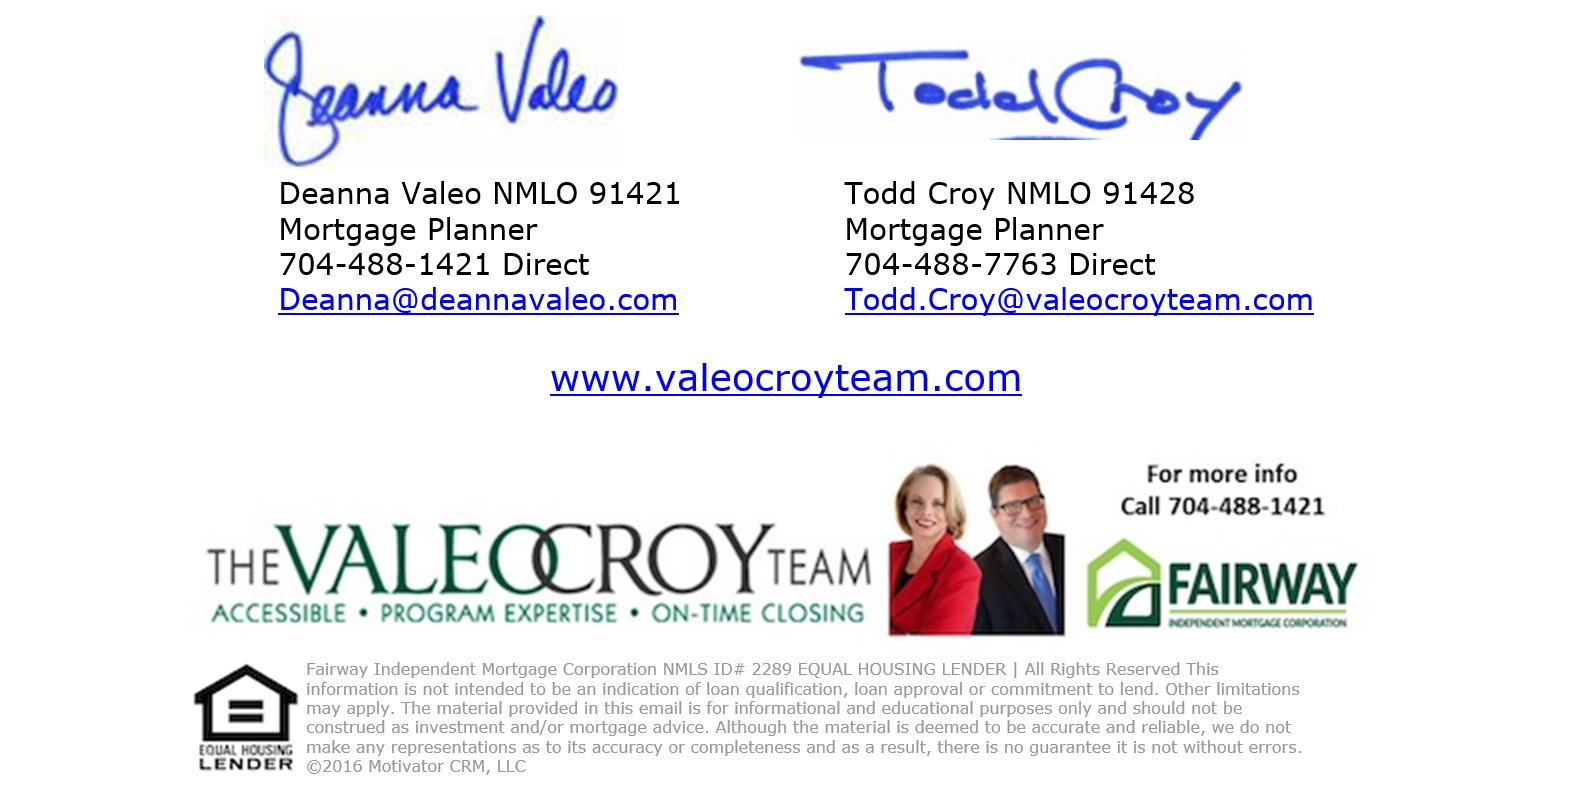 Valeo Croy Team with Fairway Mortgage Support The Charlotte Loves Houston Supply Drive